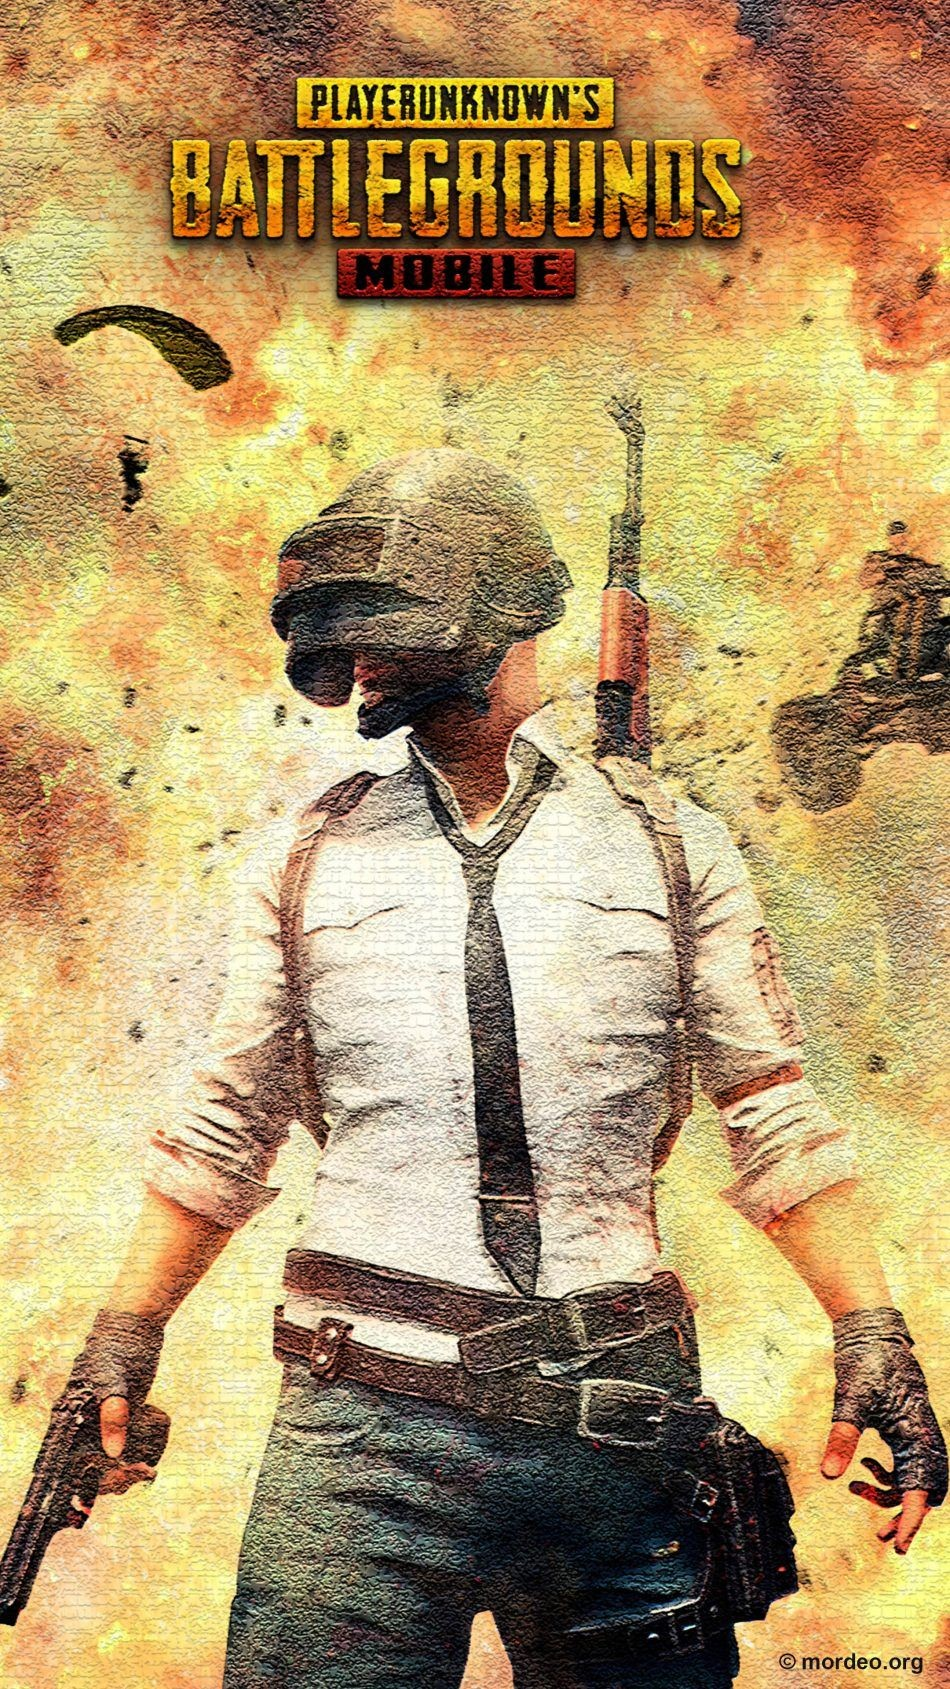 Pubg Wallpapers For Android Mobile - Pubg Wallpaper 4k Mobile , HD Wallpaper & Backgrounds